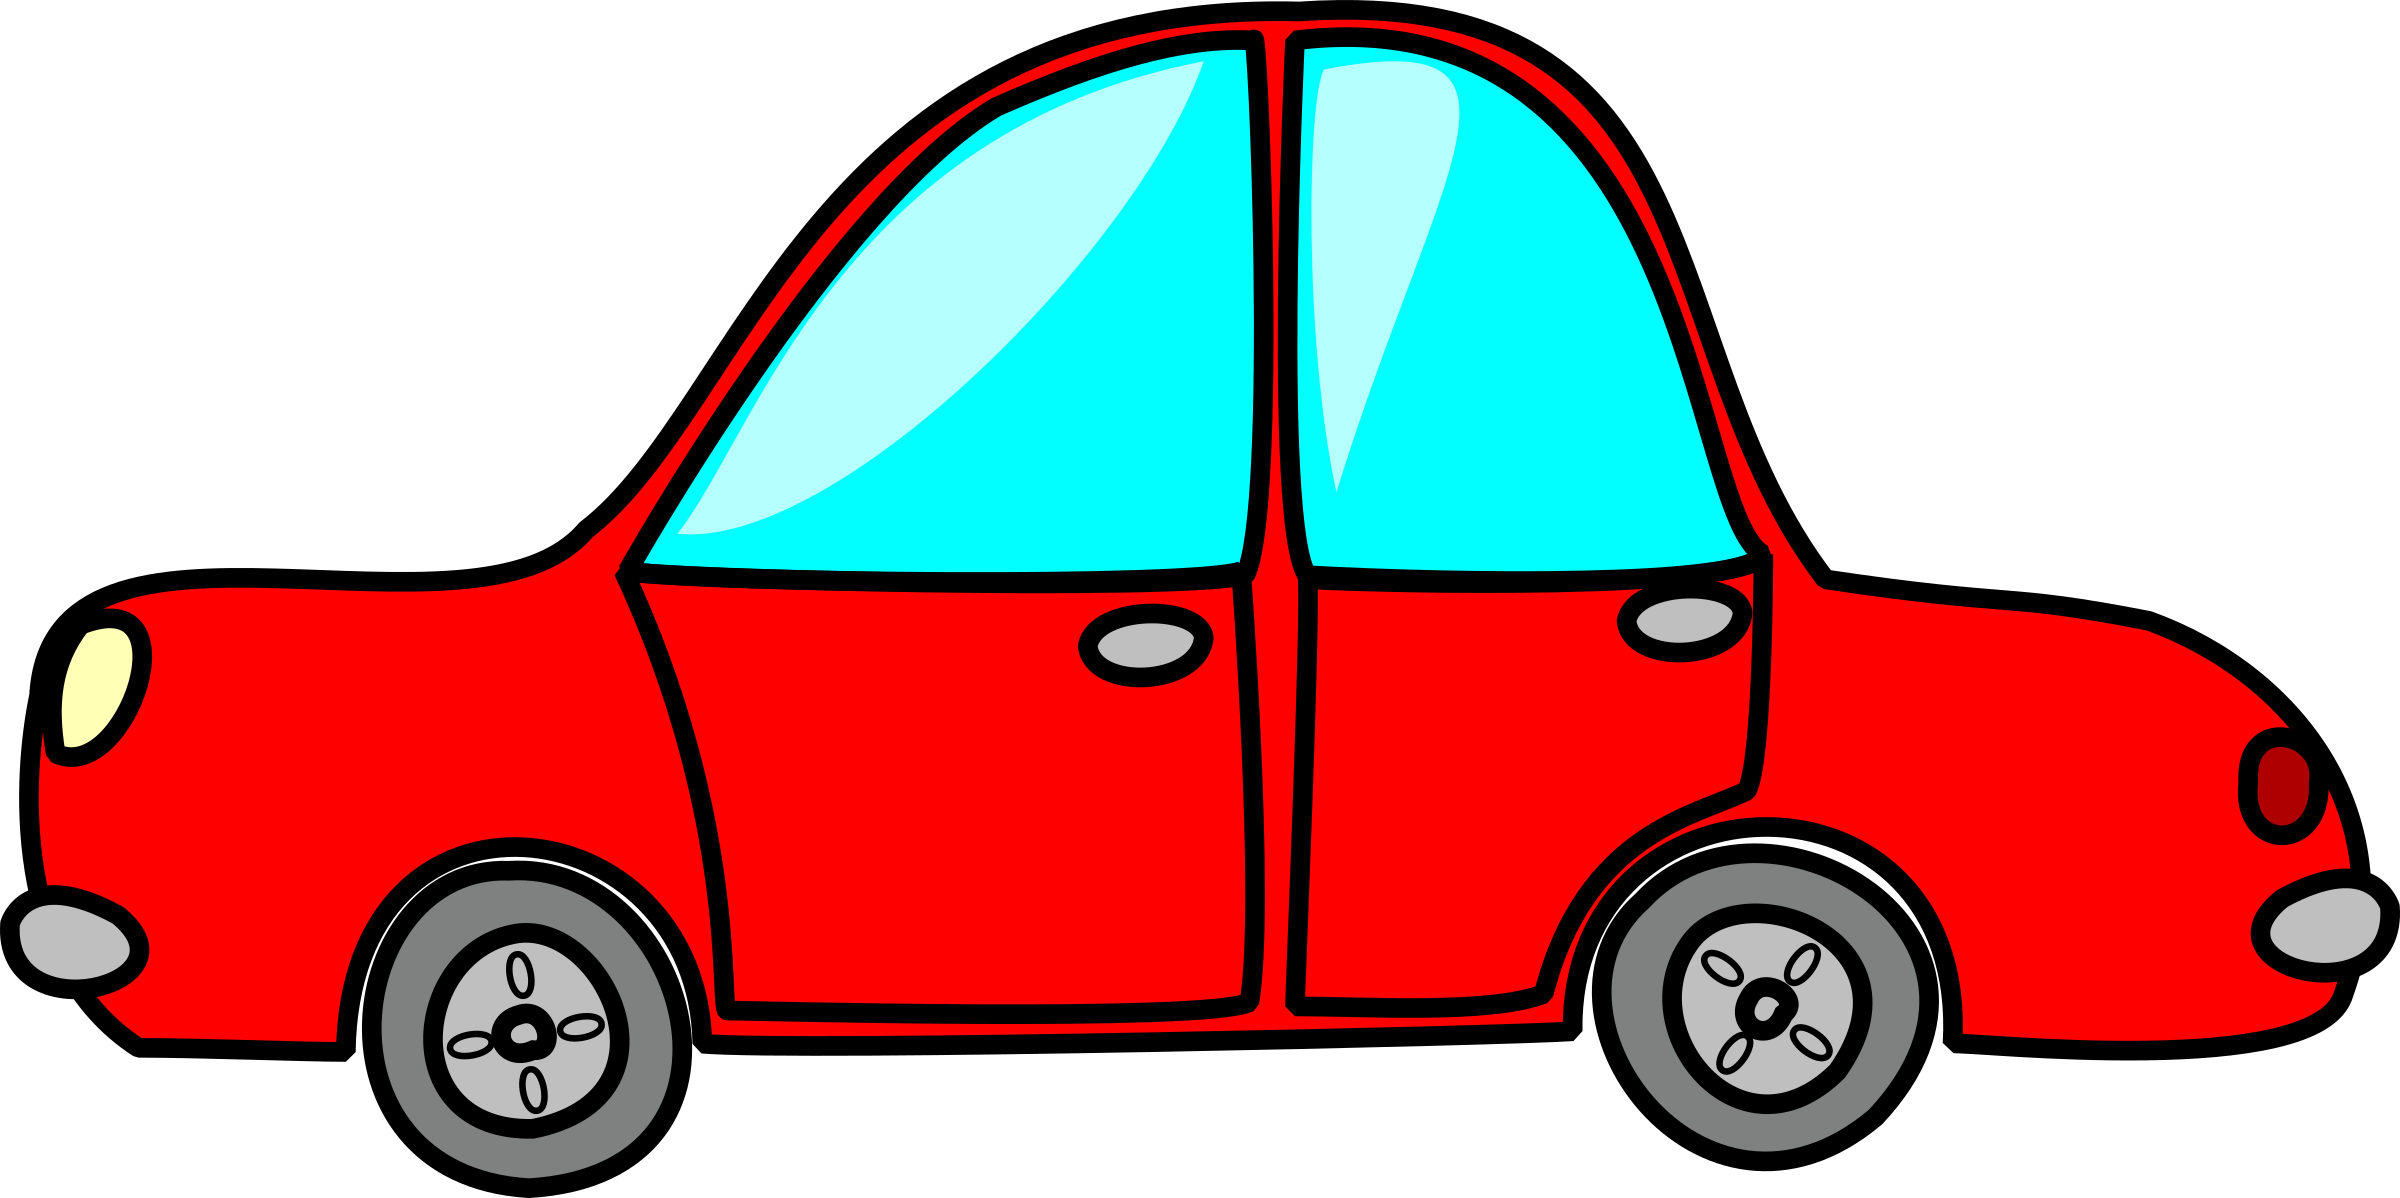 Toy clipart big car #1